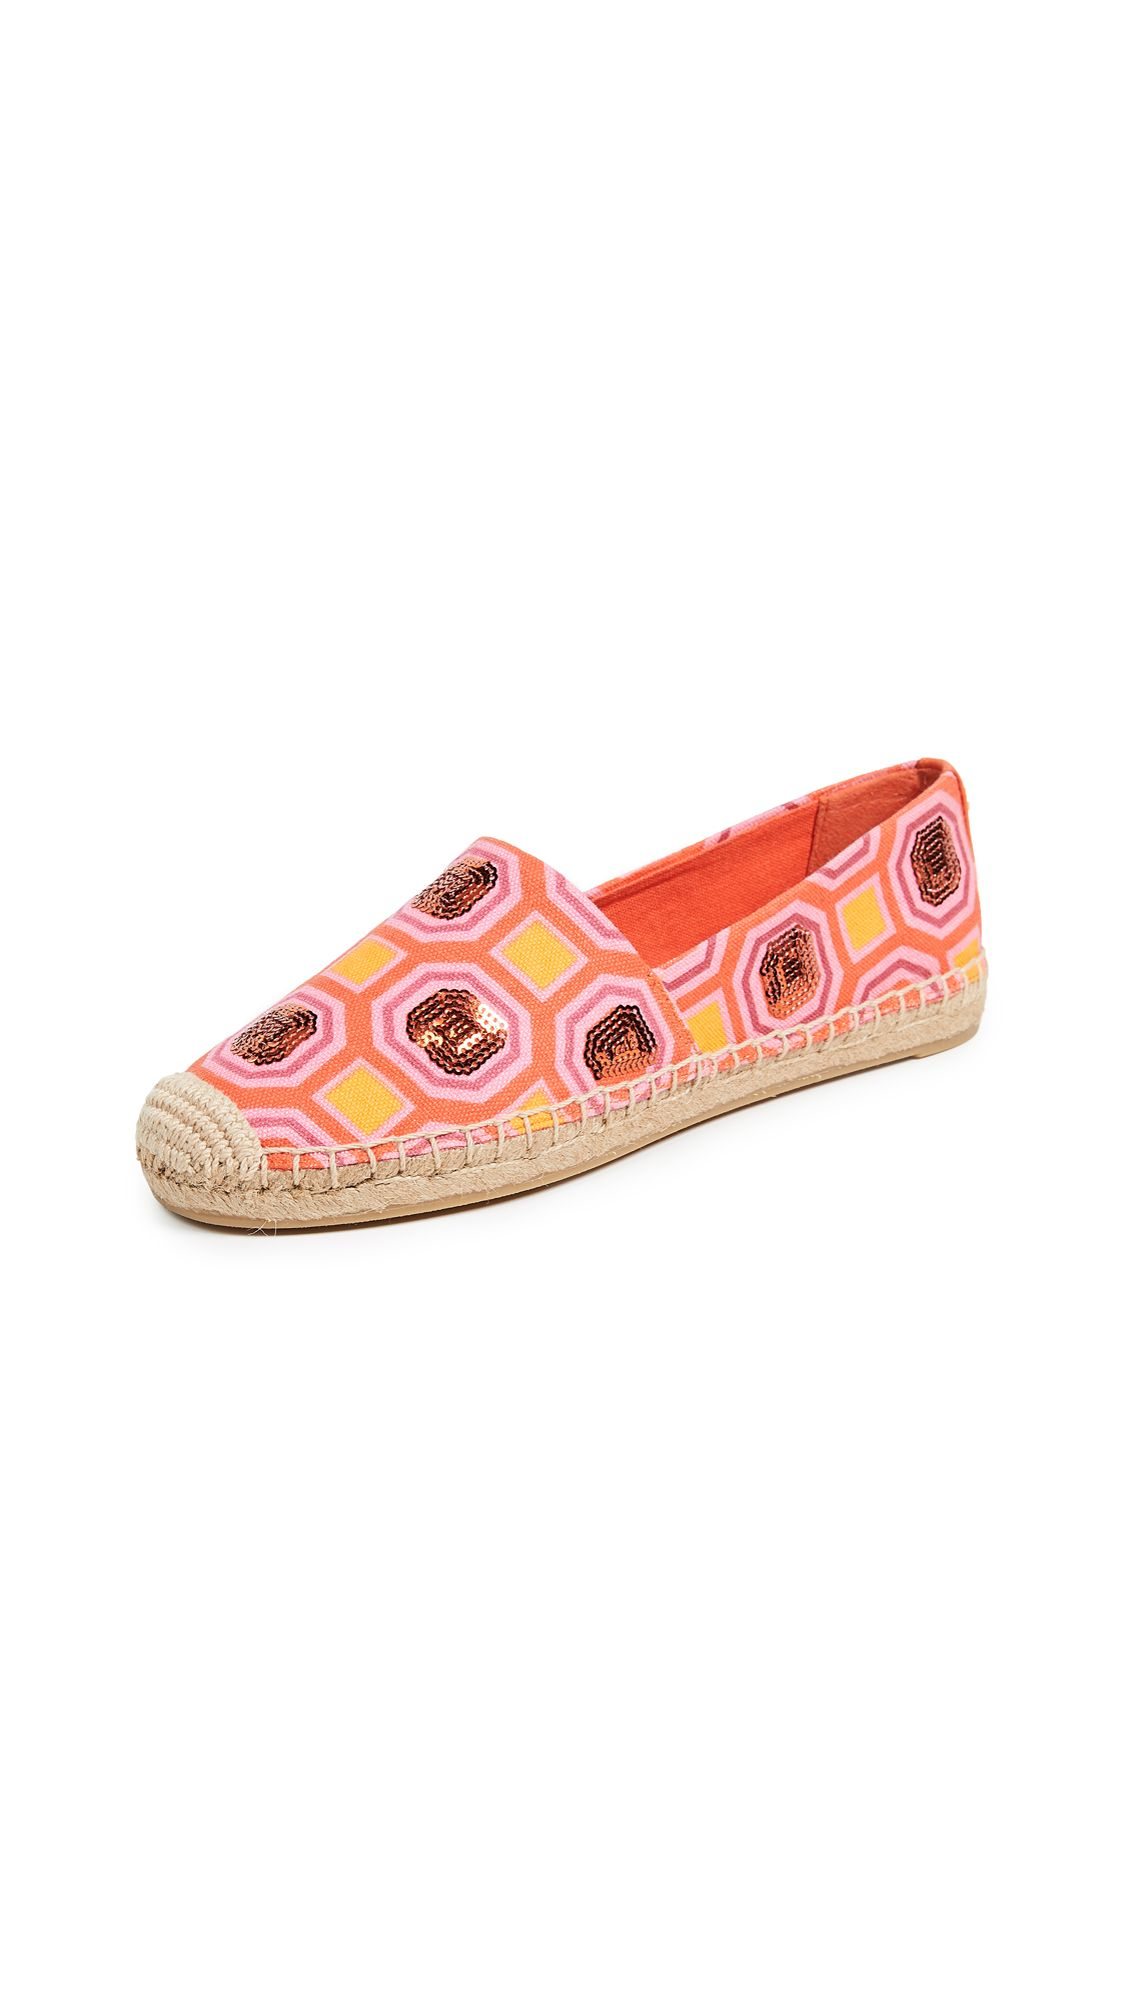 10319612811 TORY BURCH CECILY EMBELLISHED ESPADRILLES. #toryburch #shoes ...